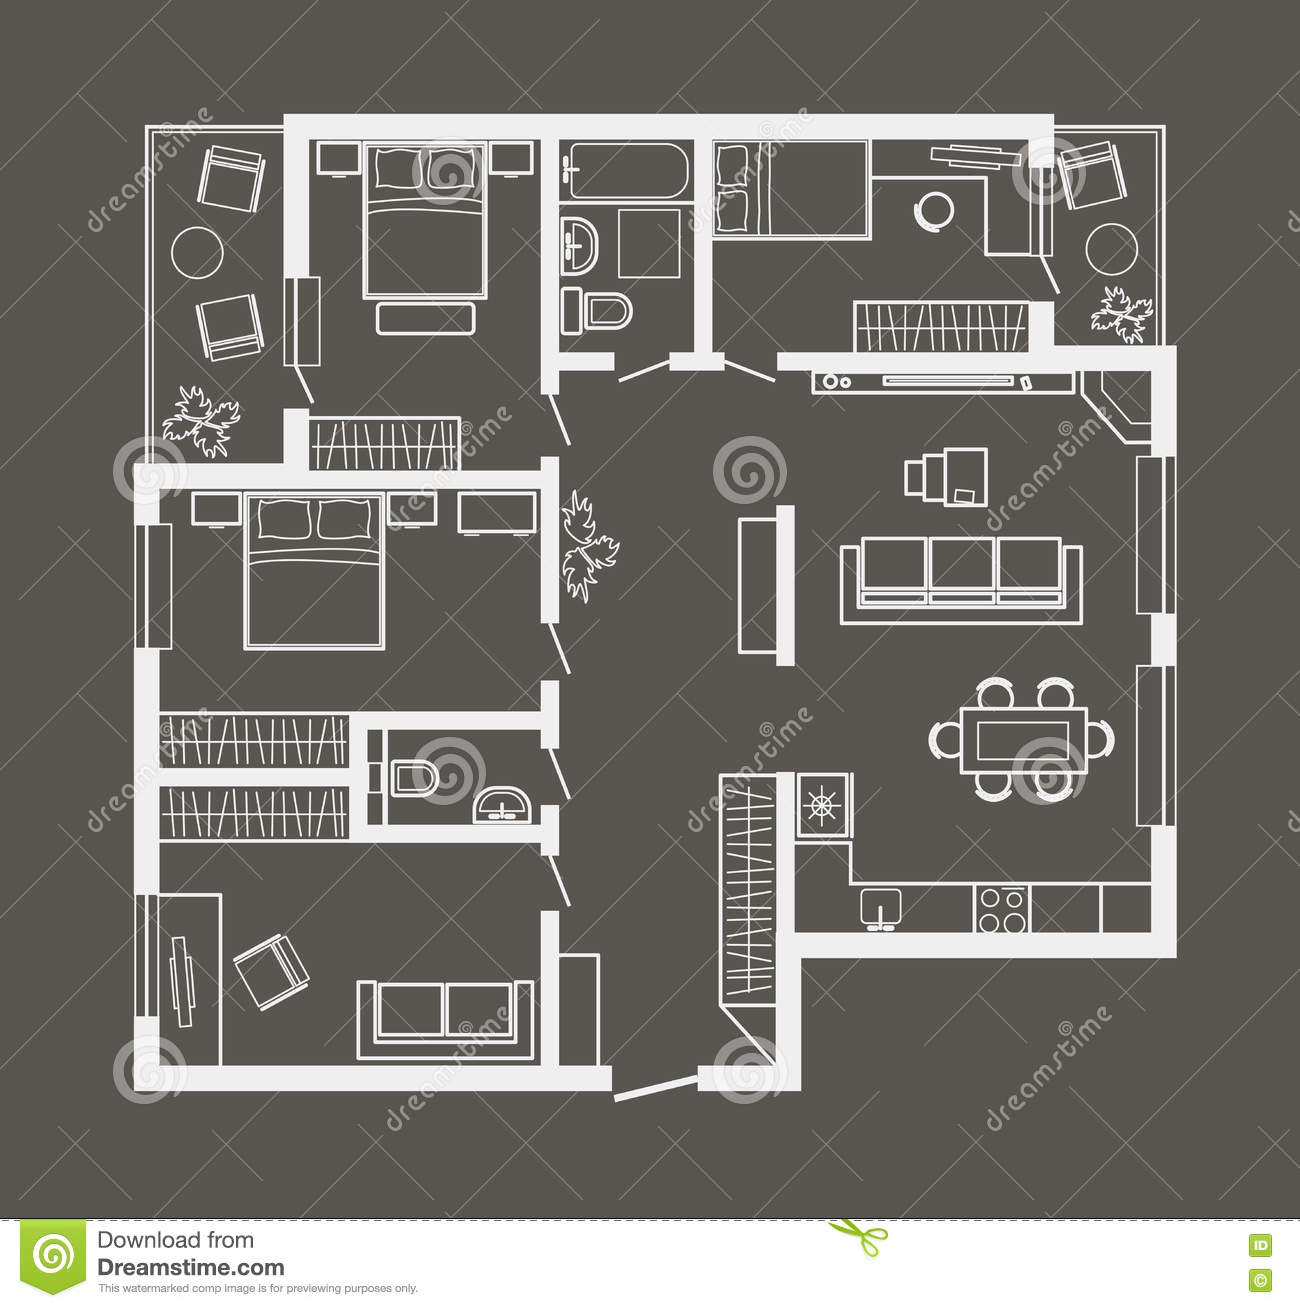 Four Bedroom Townhomes architectural sketch plan of four bedroom apartment on gray